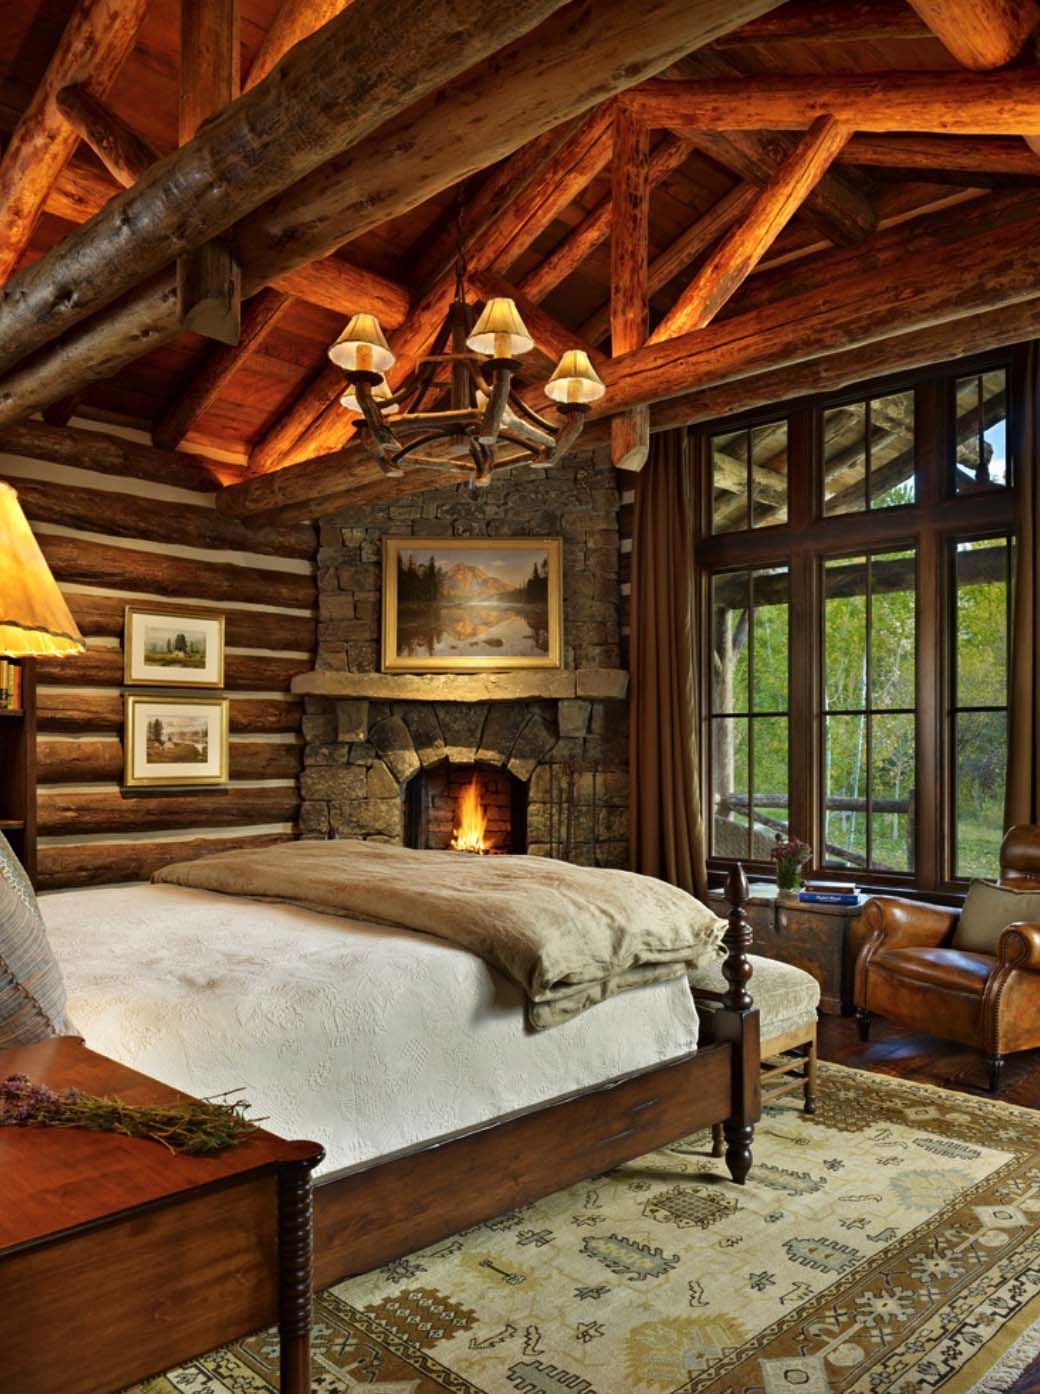 35 Gorgeous Log Cabin Style Bedrooms To Make You Drool Log Home Bedroom Cabin Style Rustic Bedroom Design